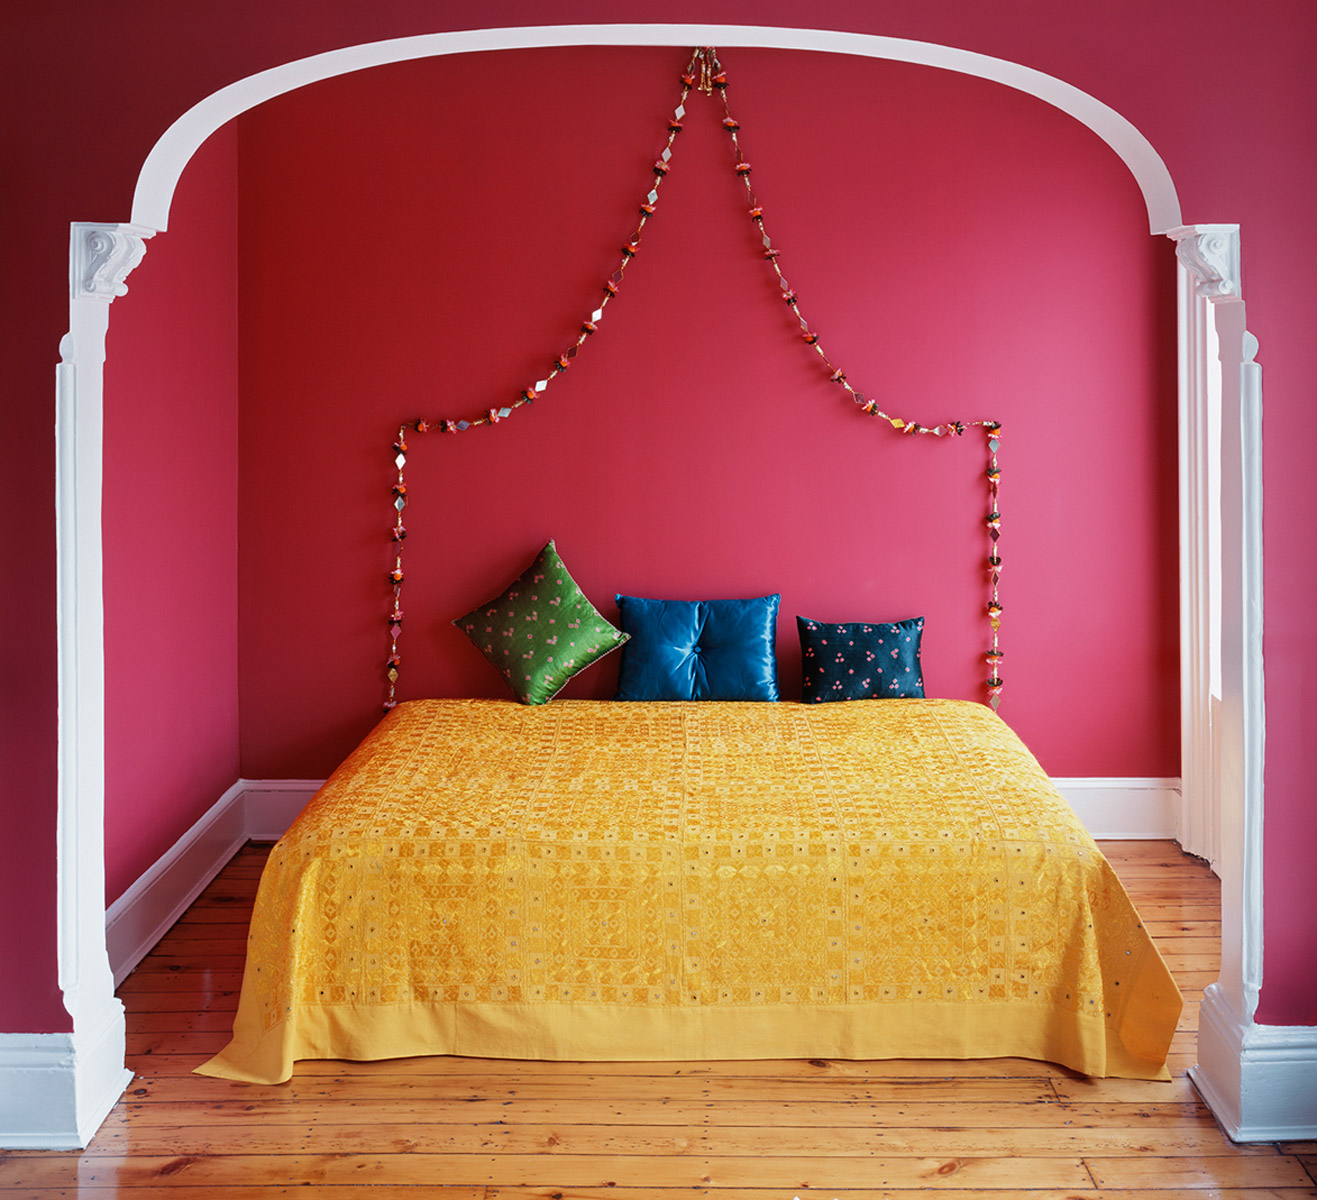 Gold-Bed-Magenta-Room.jpg